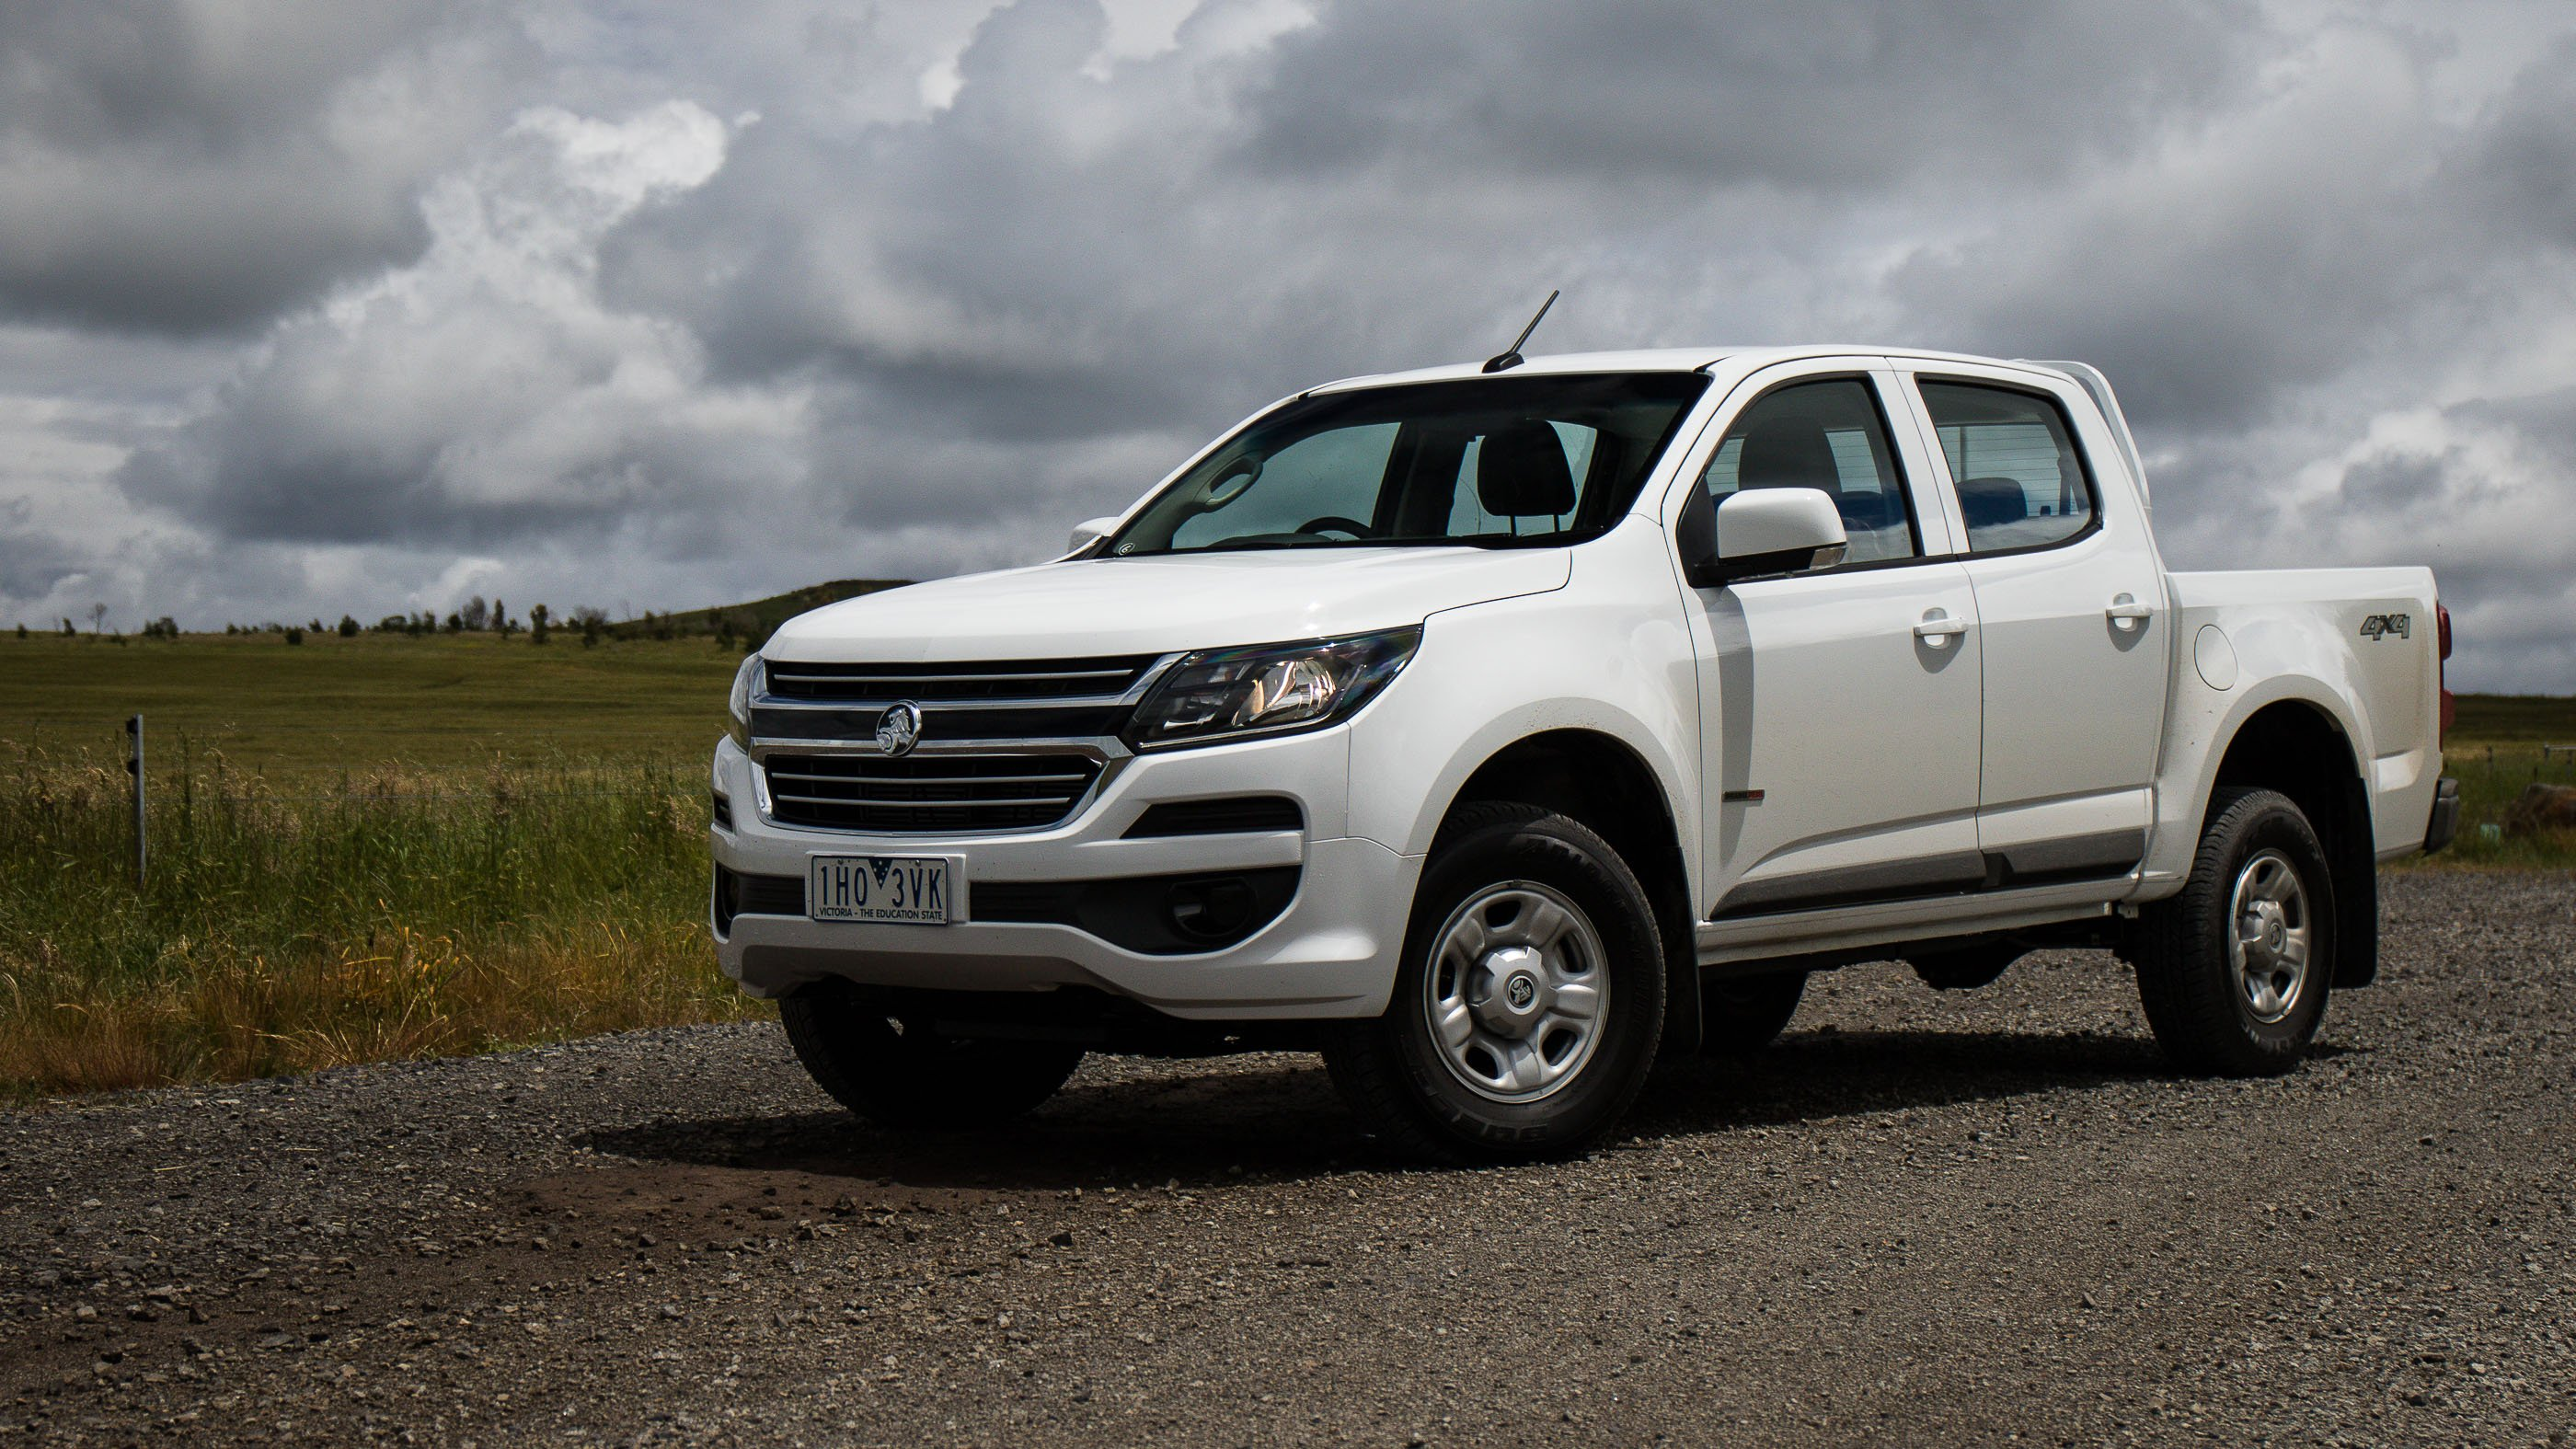 2017 Holden Colorado Ls Review Caradvice